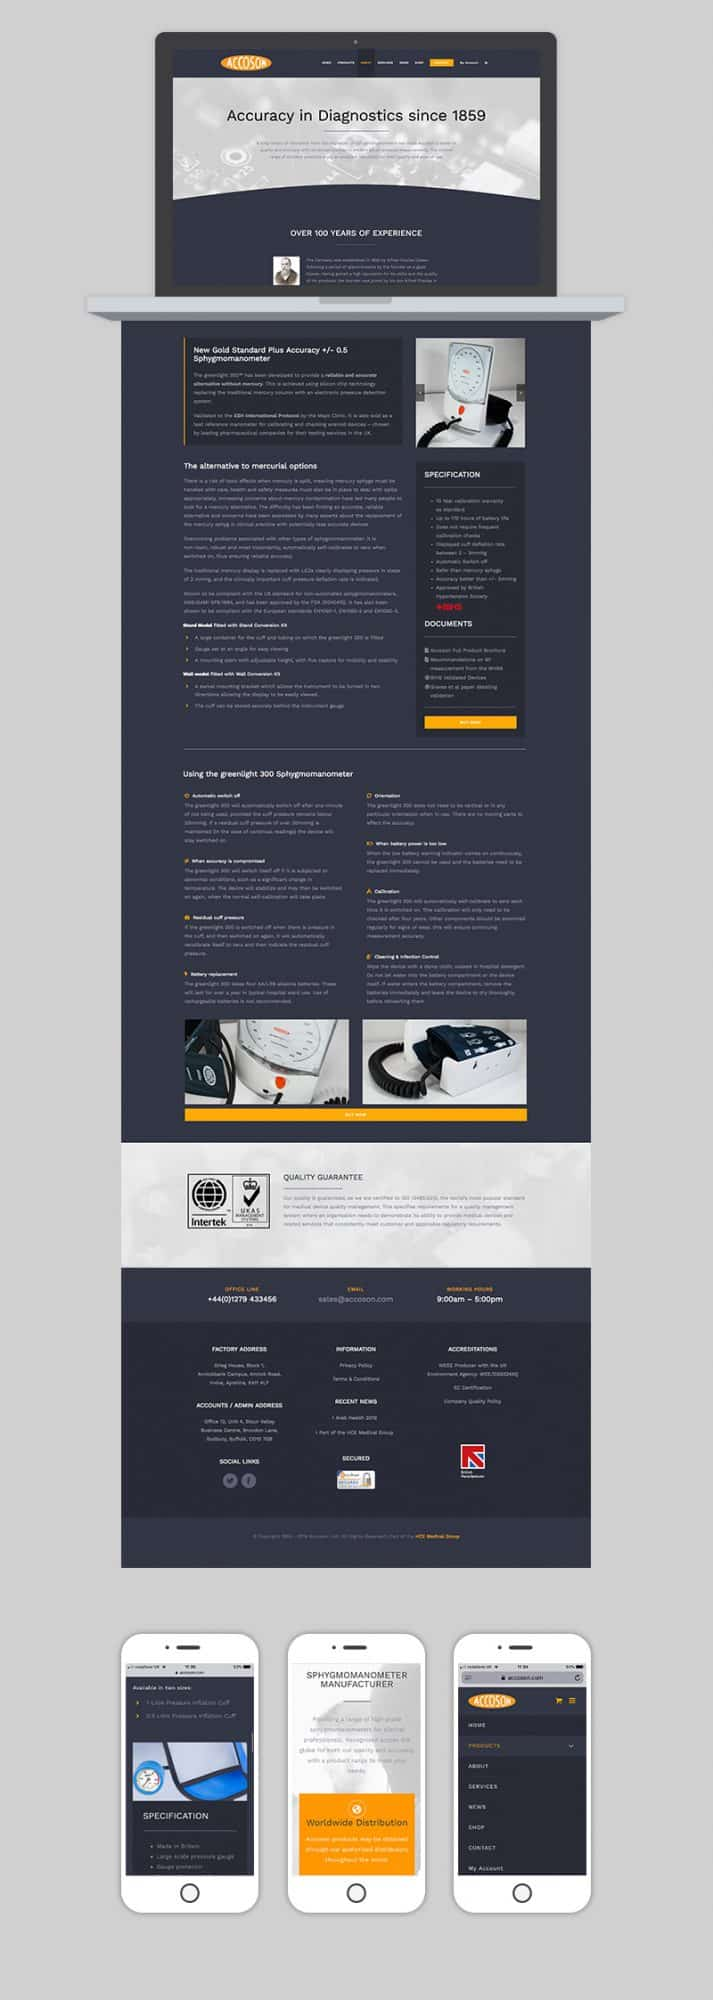 Accoson Website Full Design